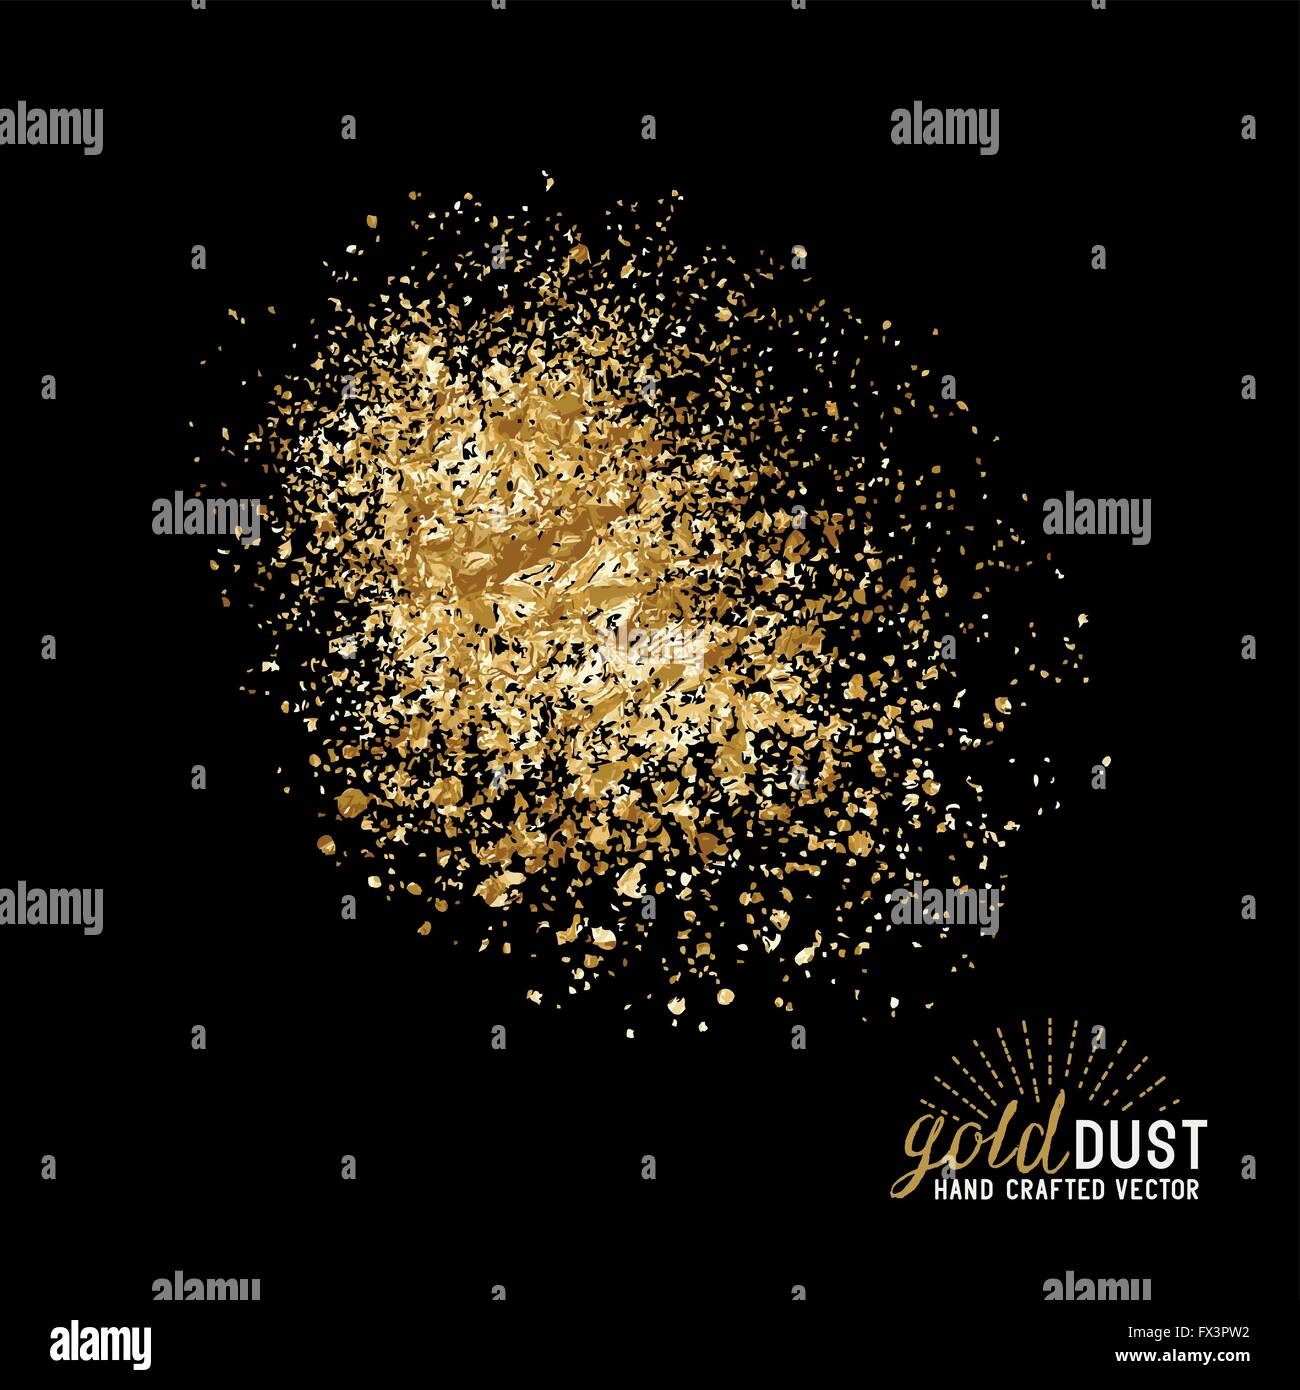 Vector Gold Dust. Foil gold dust particles. Vector illustration. - Stock Image